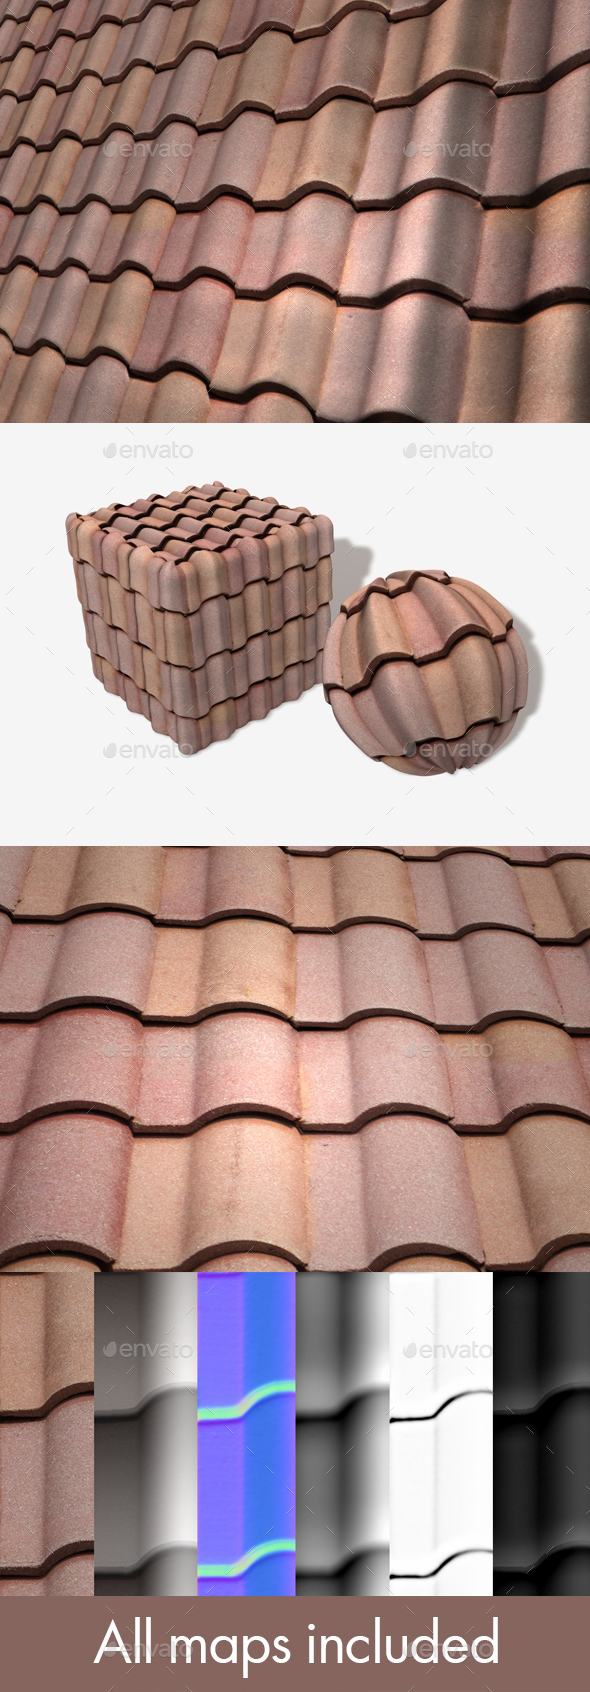 Terracotta Roof Tiles Seamless Texture - 3DOcean Item for Sale